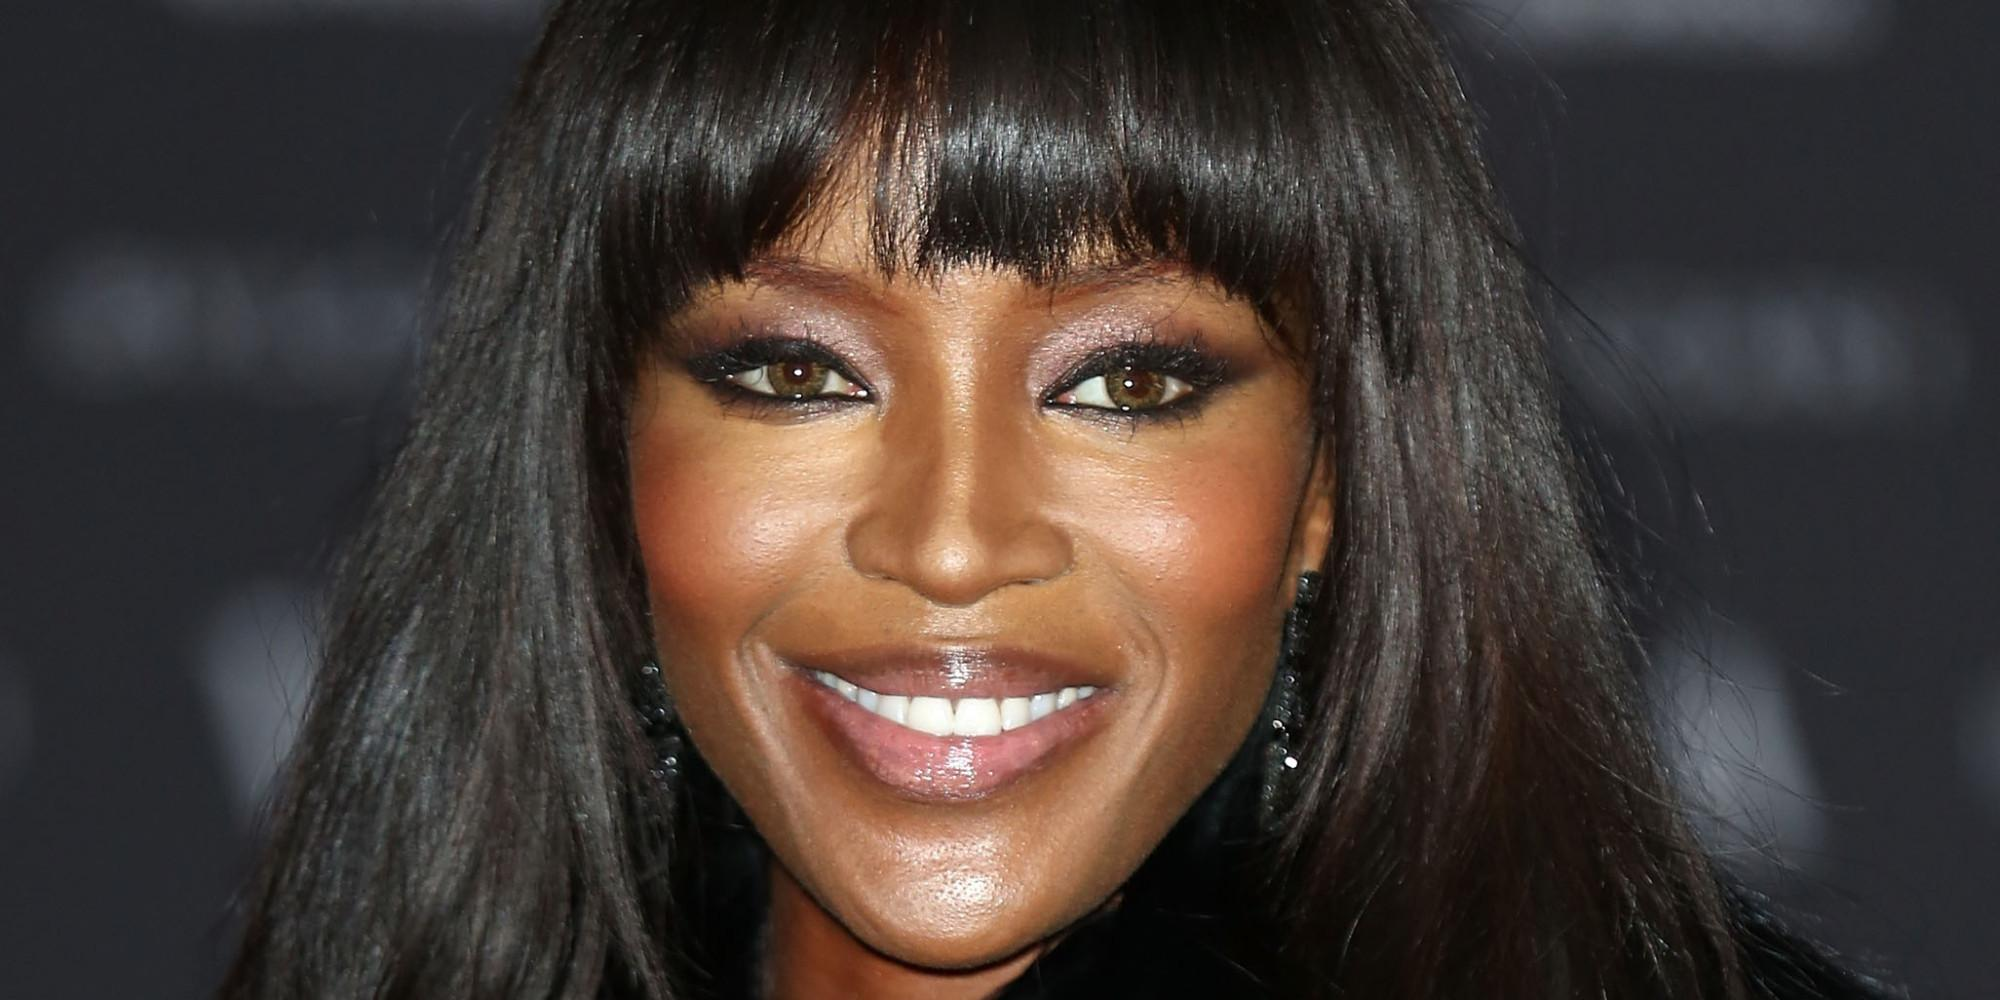 Naomi Campbell's Cameraman Conflict Will Give You Some Unfortunate